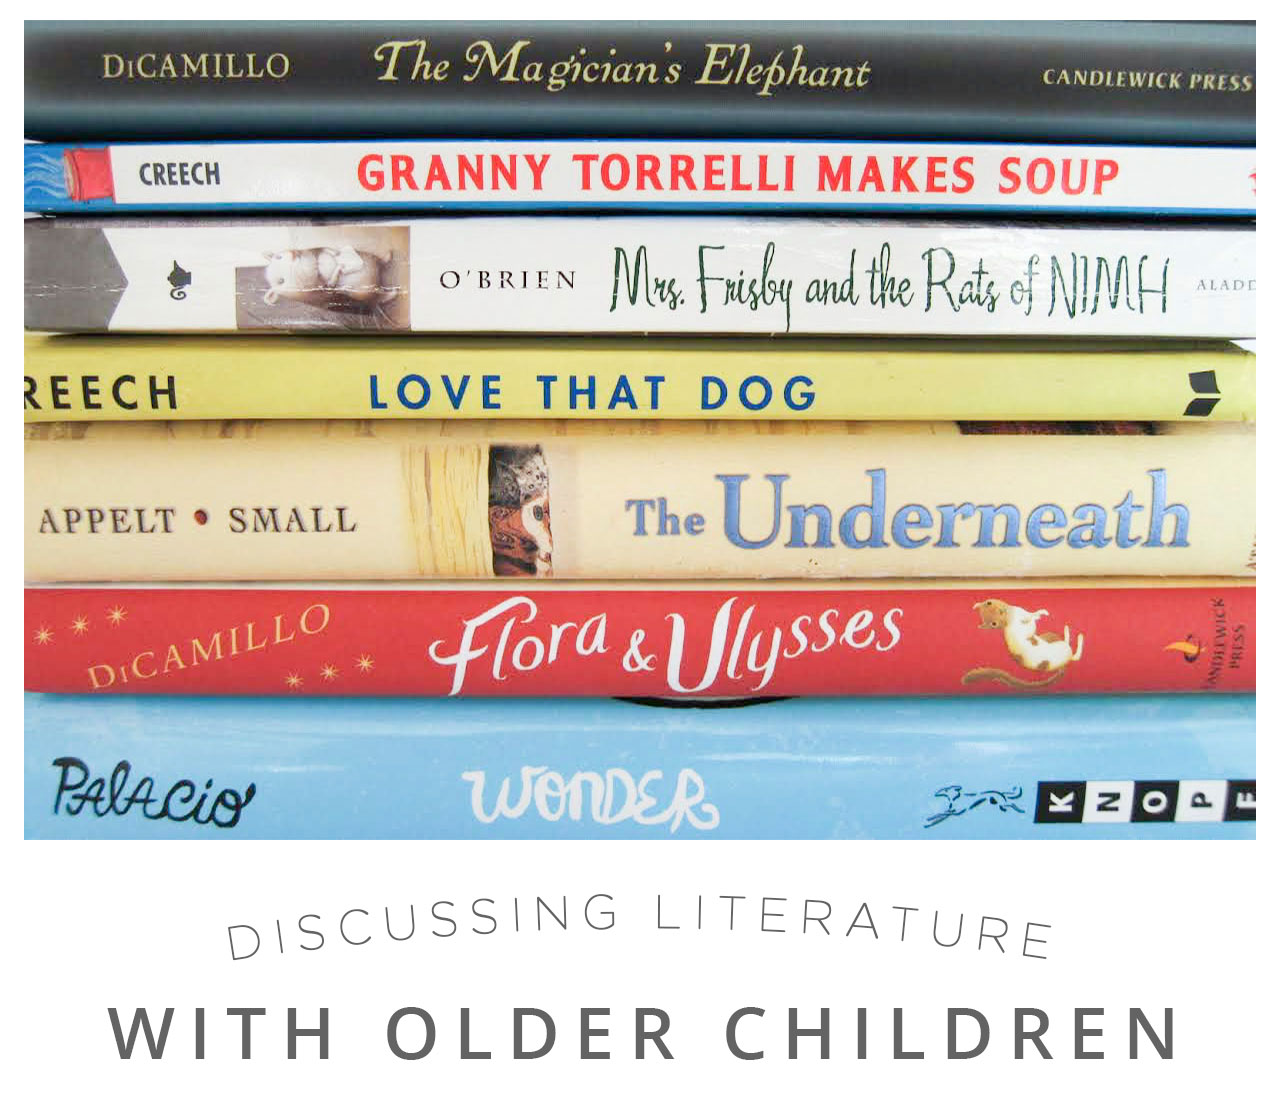 Discussing Literature with Older Children